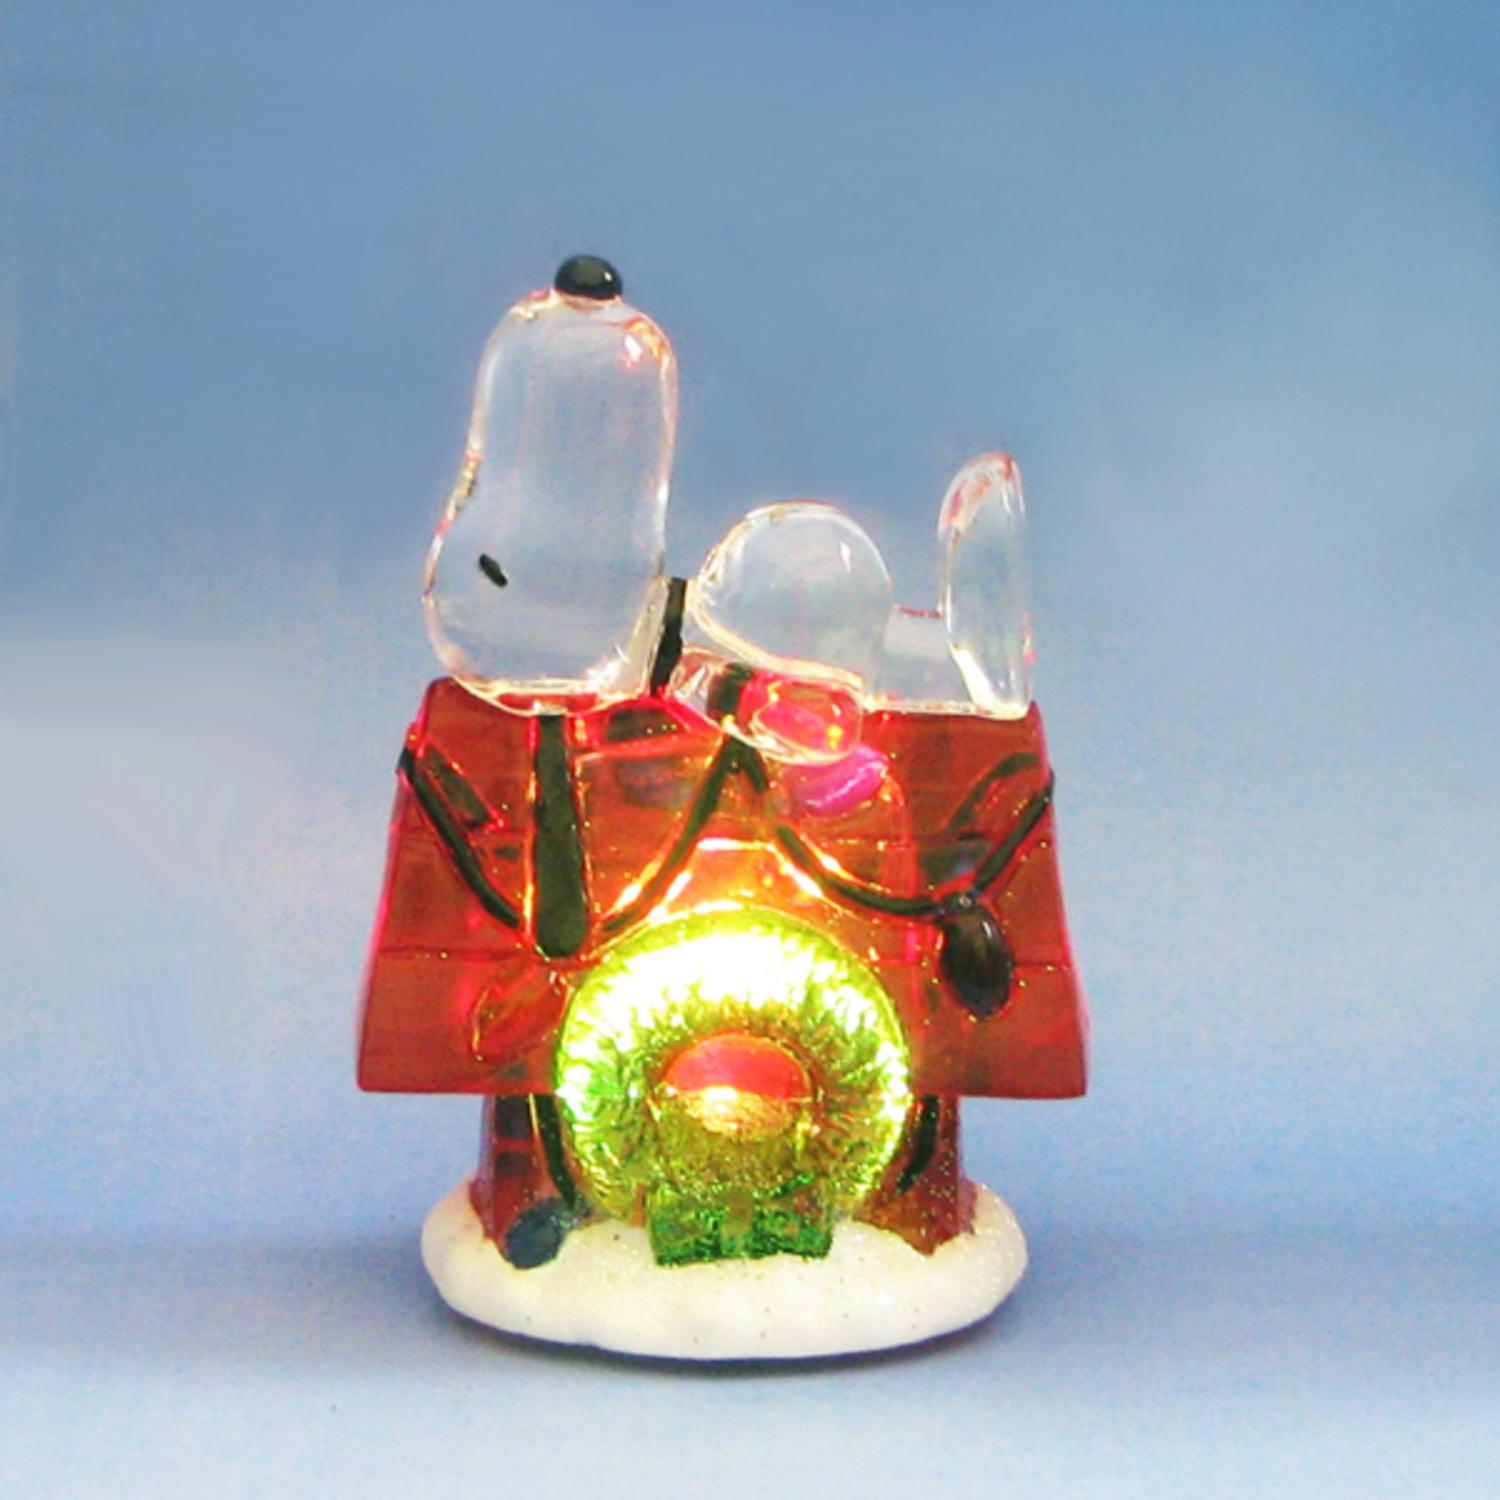 Pack of 6 LED Lighted Peanuts Snoopy on Doghouse Christmas Table Decorations 3""